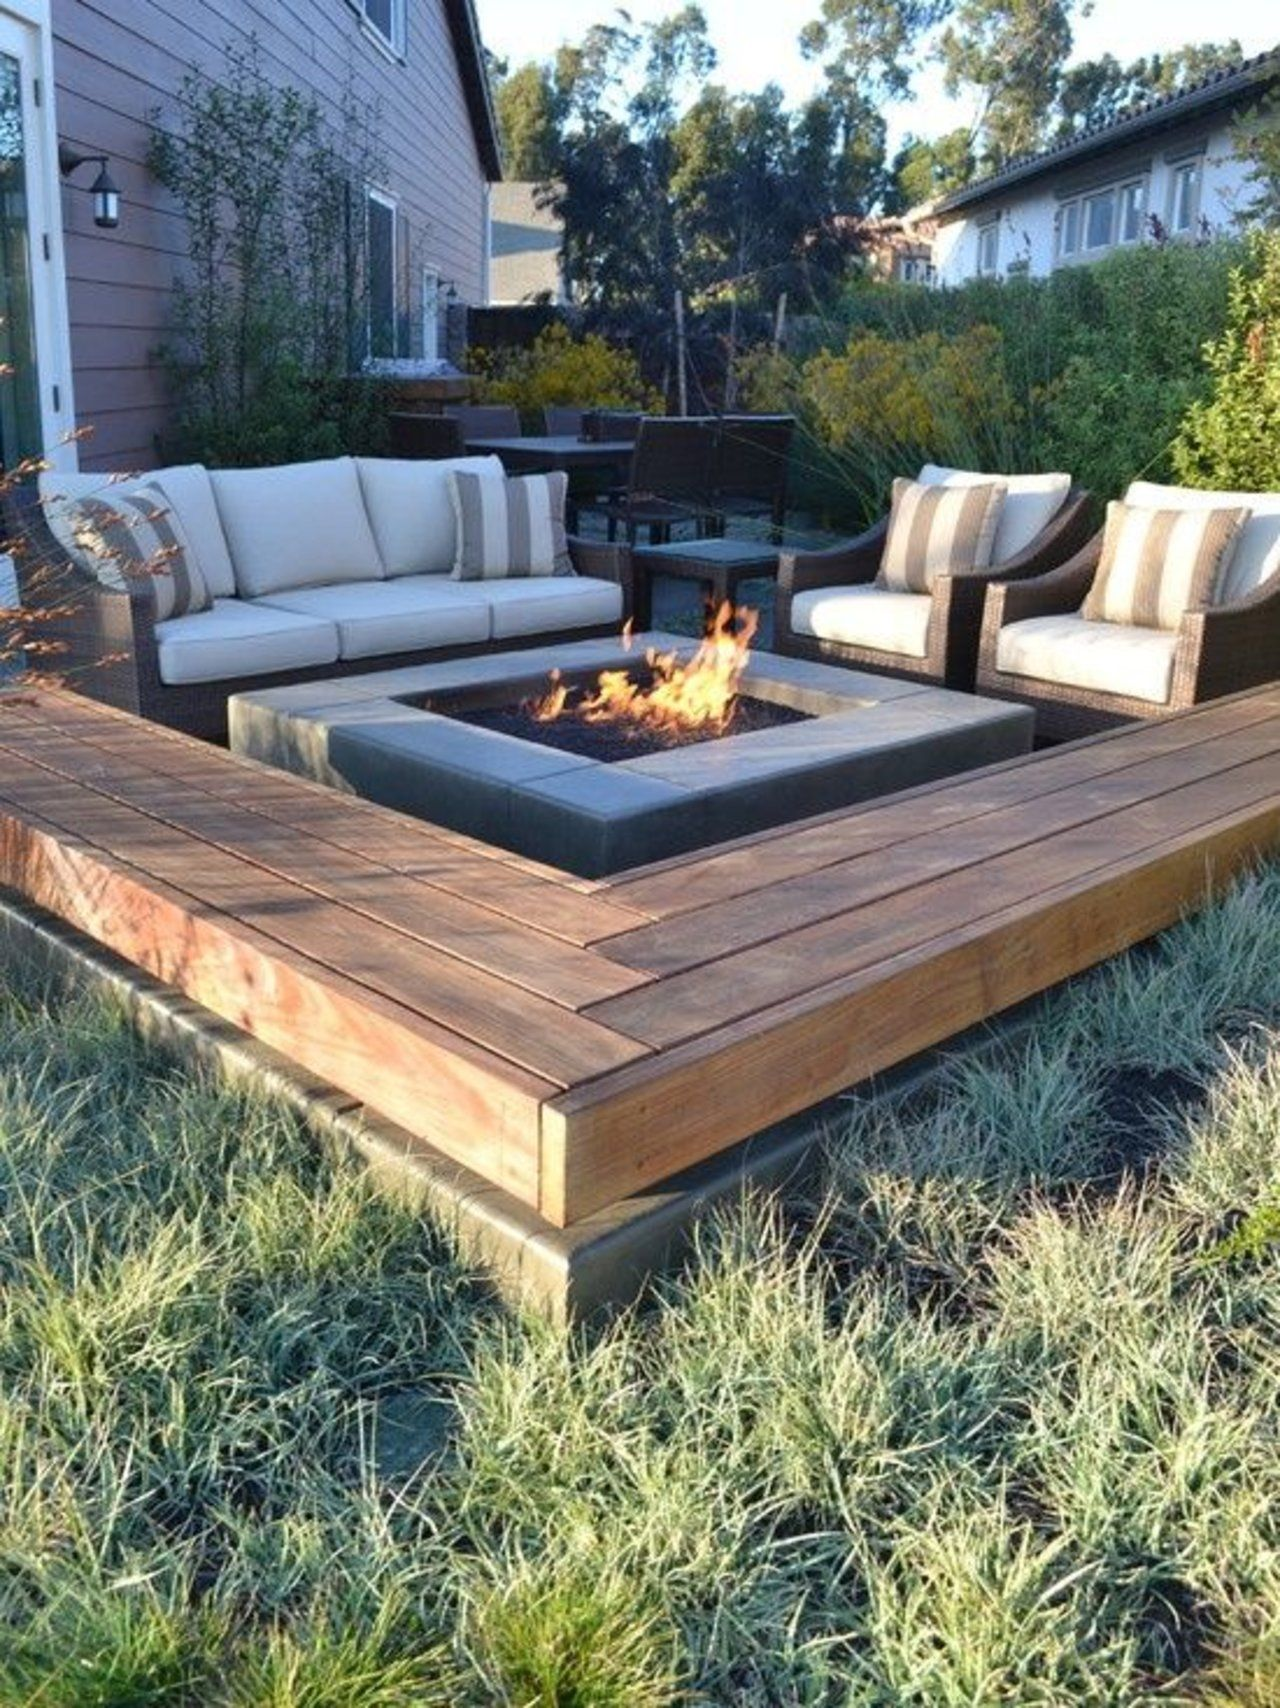 363478554872e9b23427779acb6d070e Top Result 50 Awesome Rustic Fire Pit